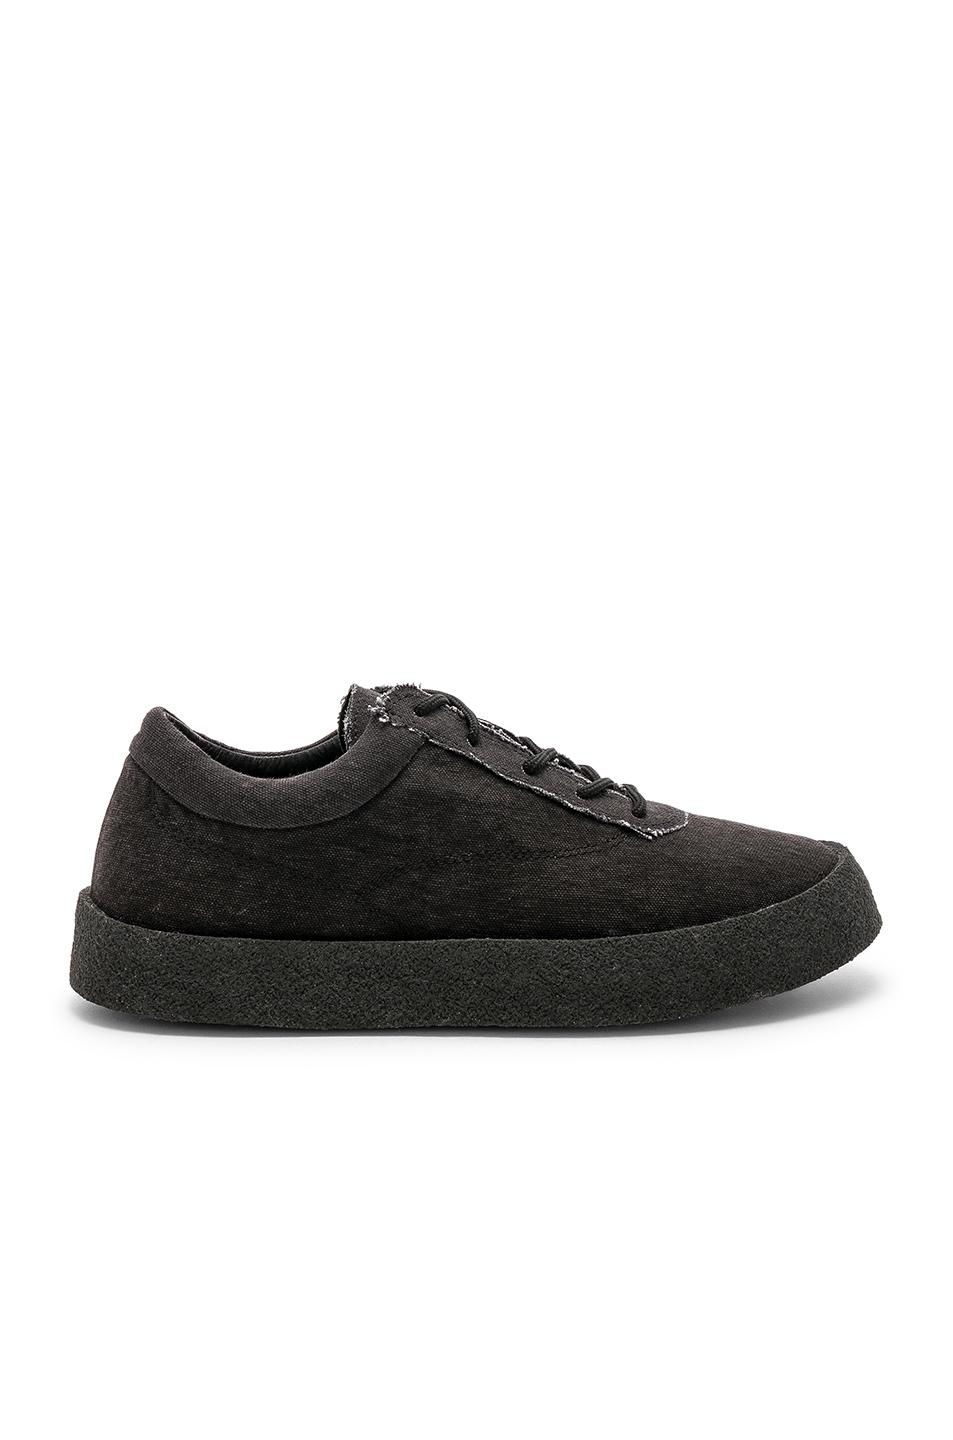 YeezyWashed Canvas Crepe Sneakers in . Pw6fI1